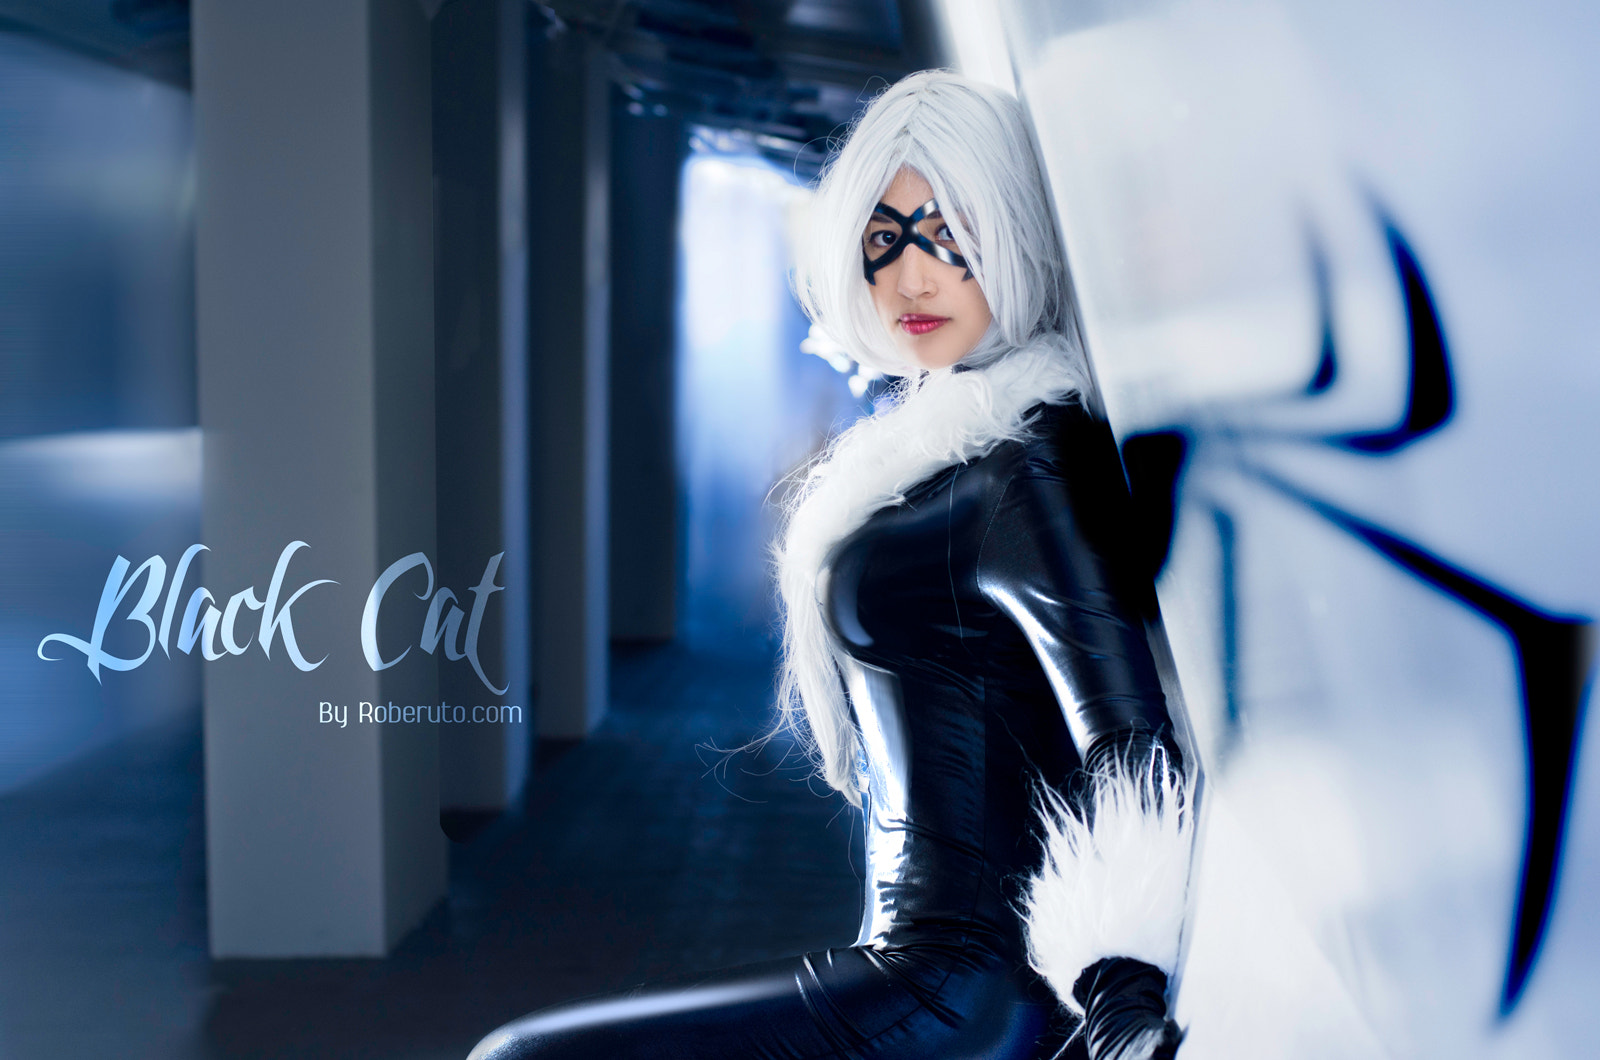 Photograph Black Cat by Roberuto ロベルト on 500px